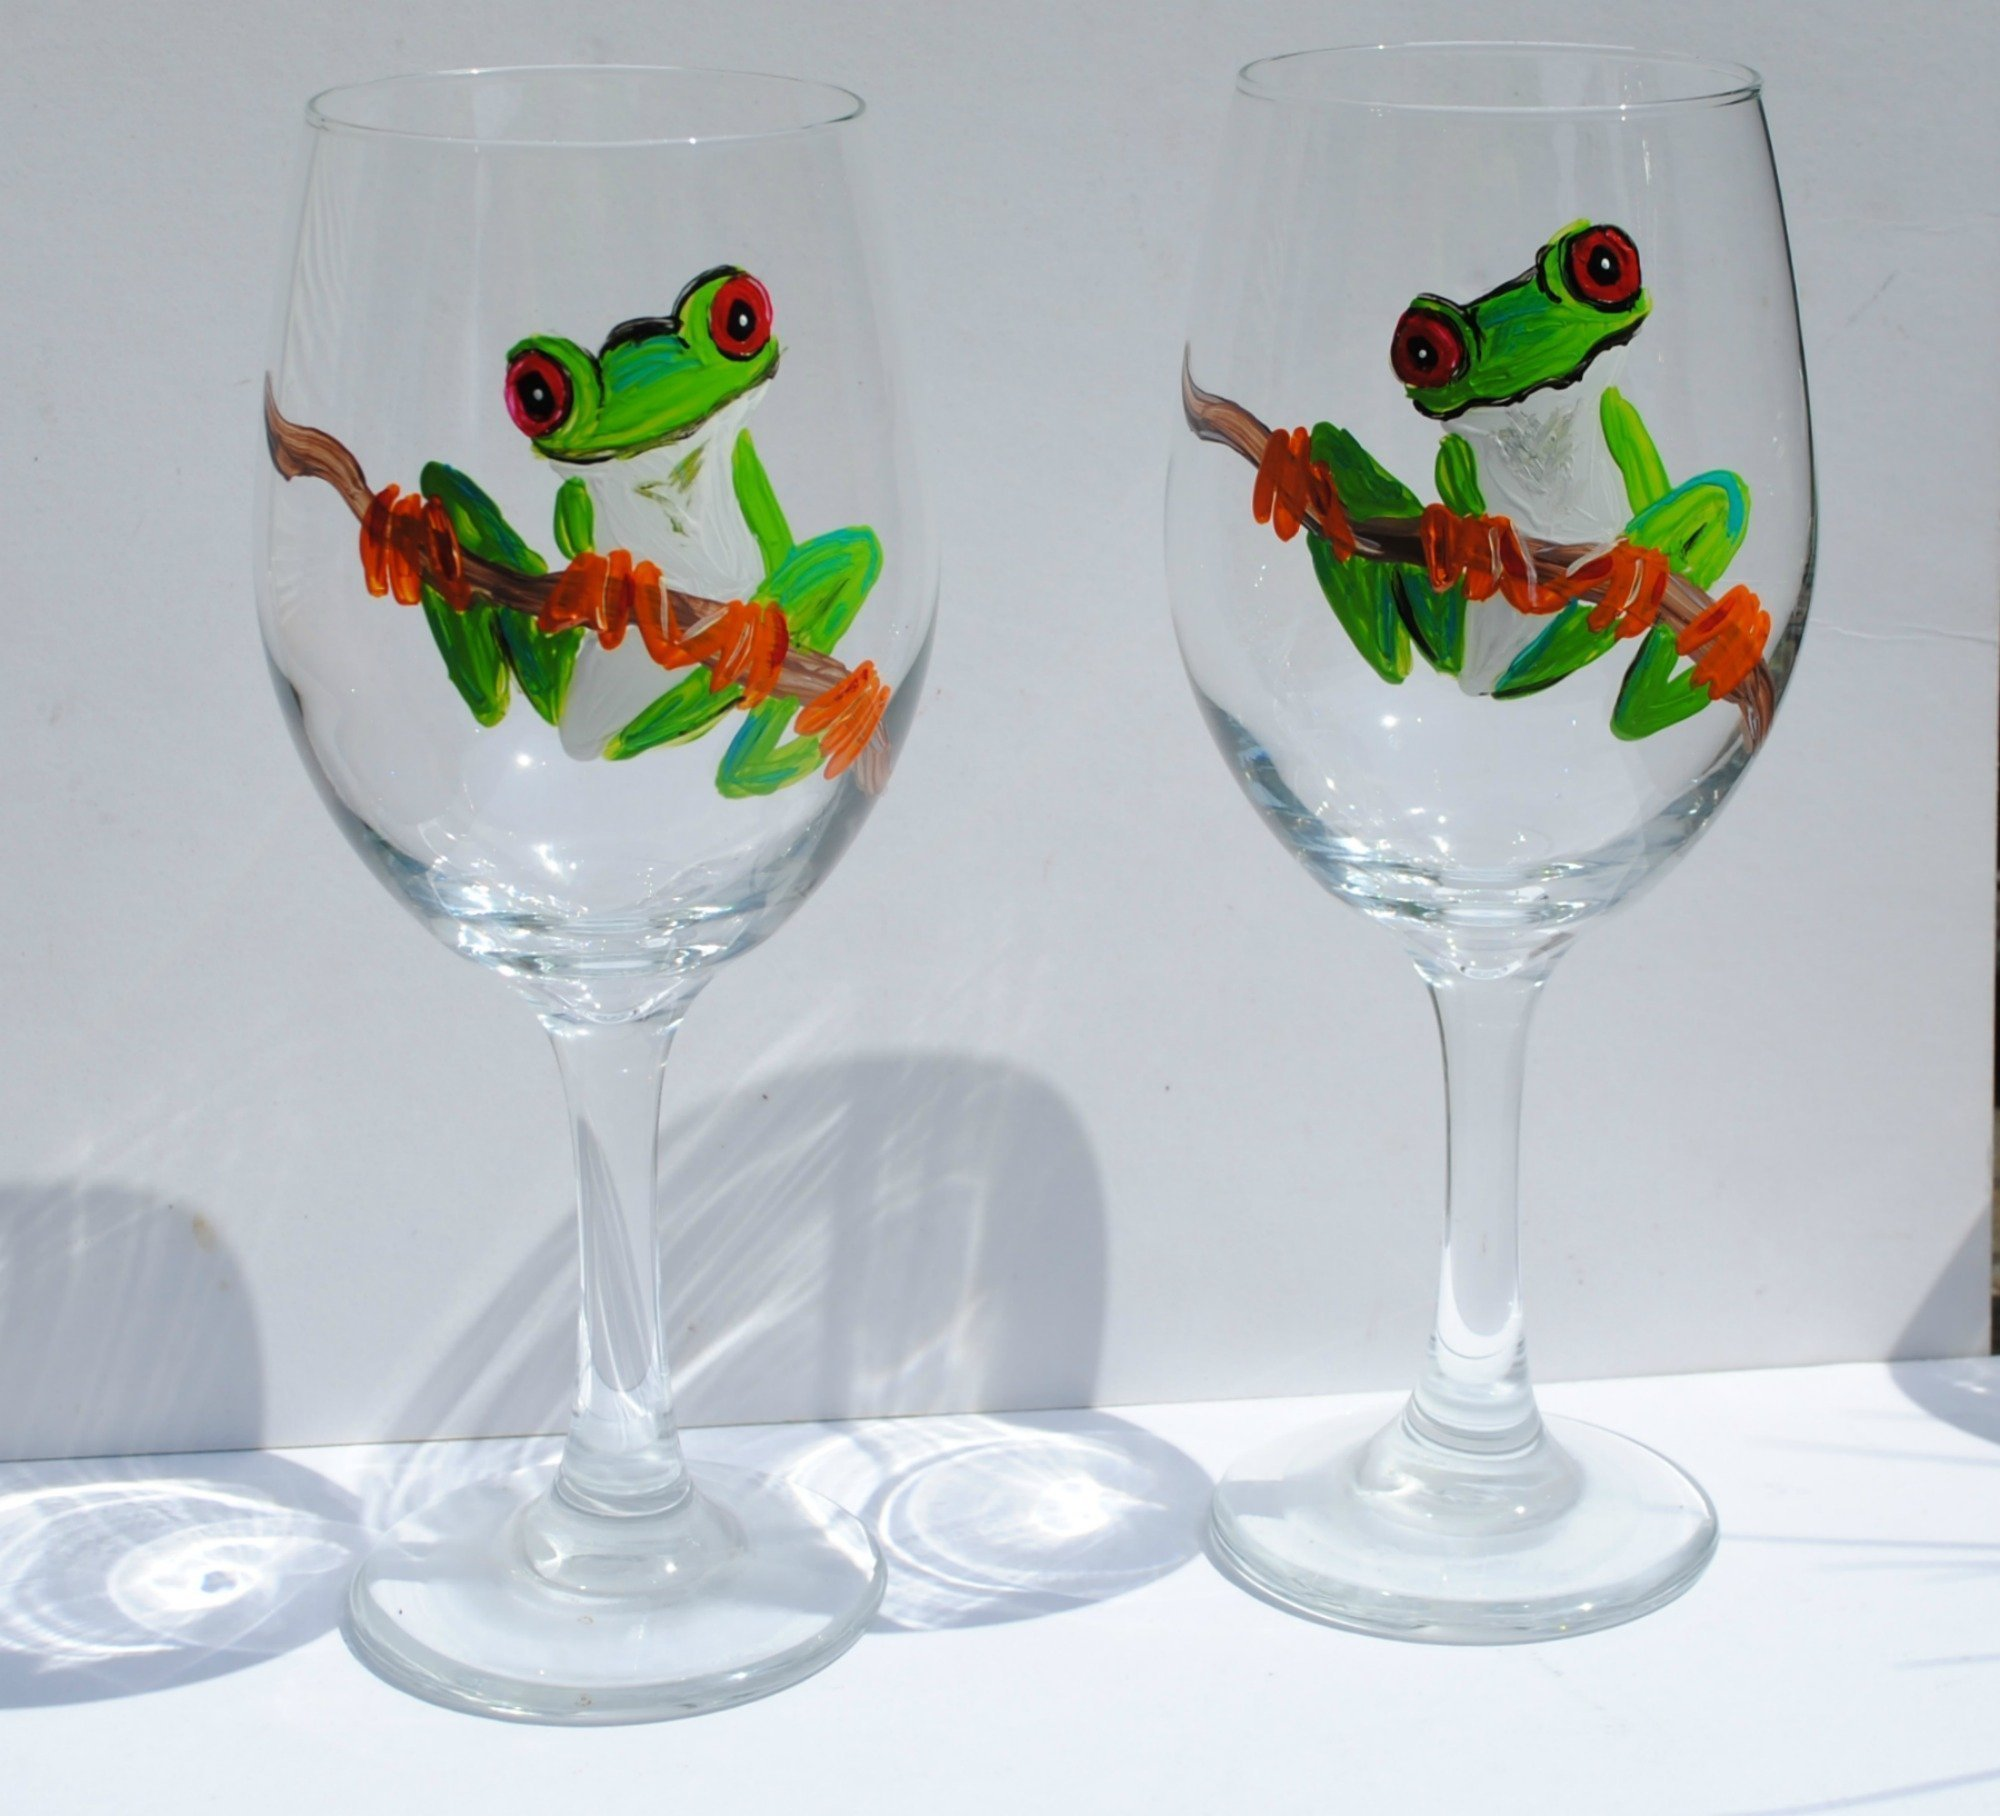 Green Tree Frog Hand Painted 20 oz Stemmed Wine Glasses (Set of 2)